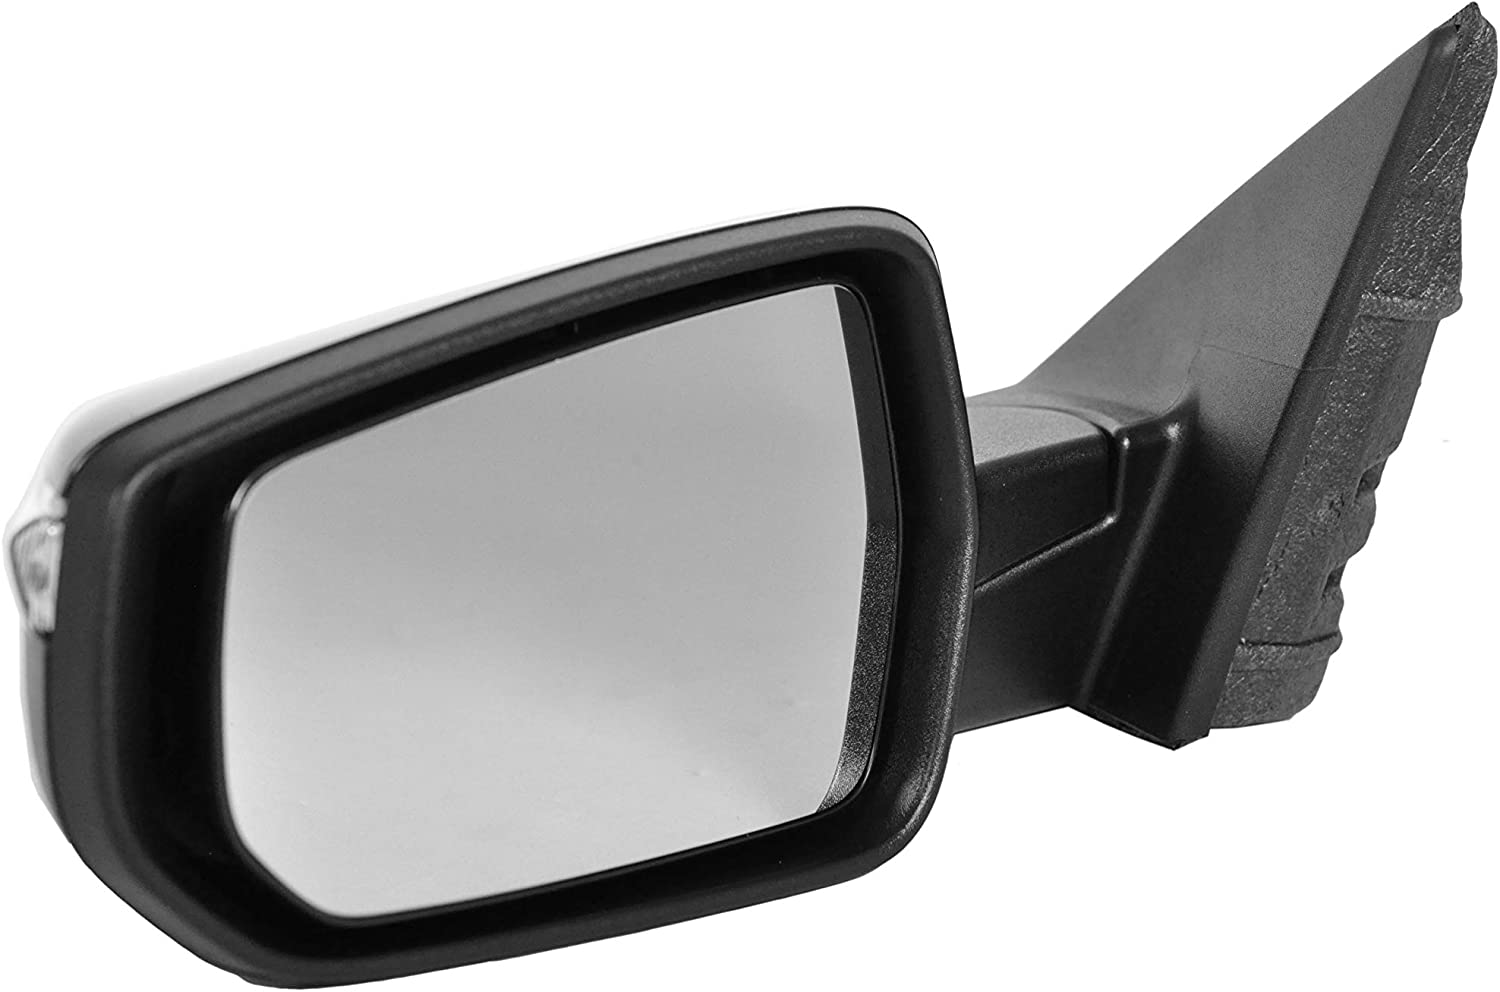 Driver Side Power Operated /& Heated Mirror With Signal With Matching Paint Fits 16-18 Malibu LT Manual Folding Parts Link #: GM1320539 LT Hybrid Model